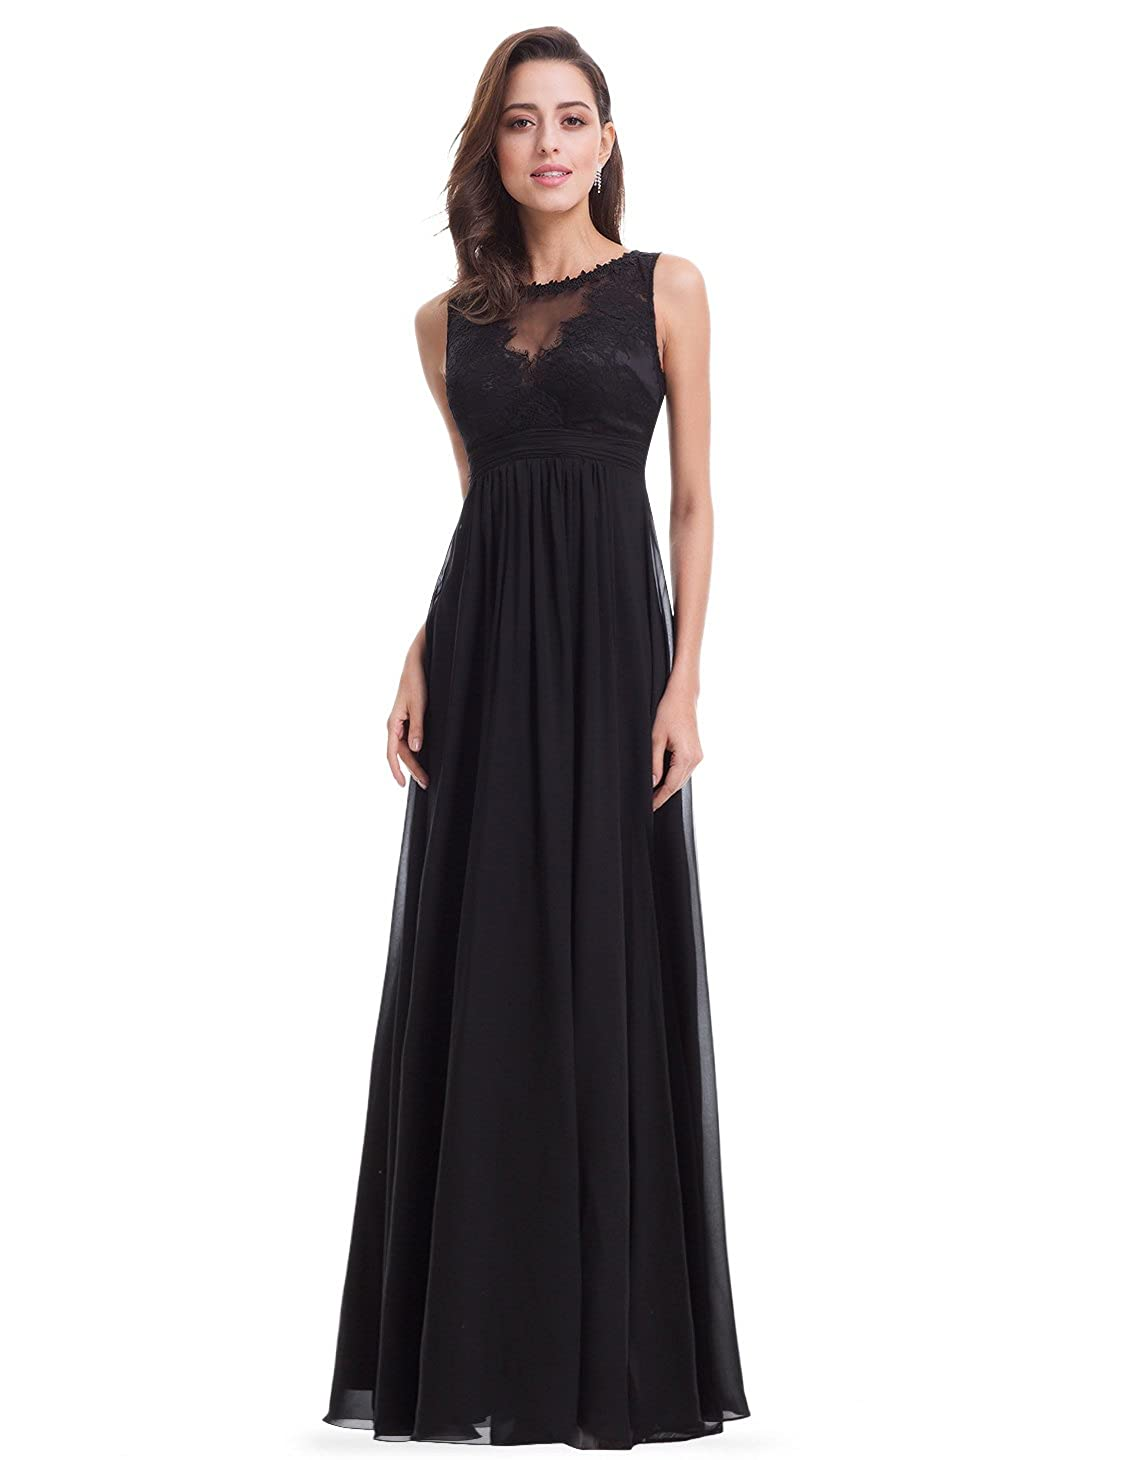 Ever-Pretty Womens Elegant Round Neck Long Evening Dress 08715 at Amazon Womens Clothing store: